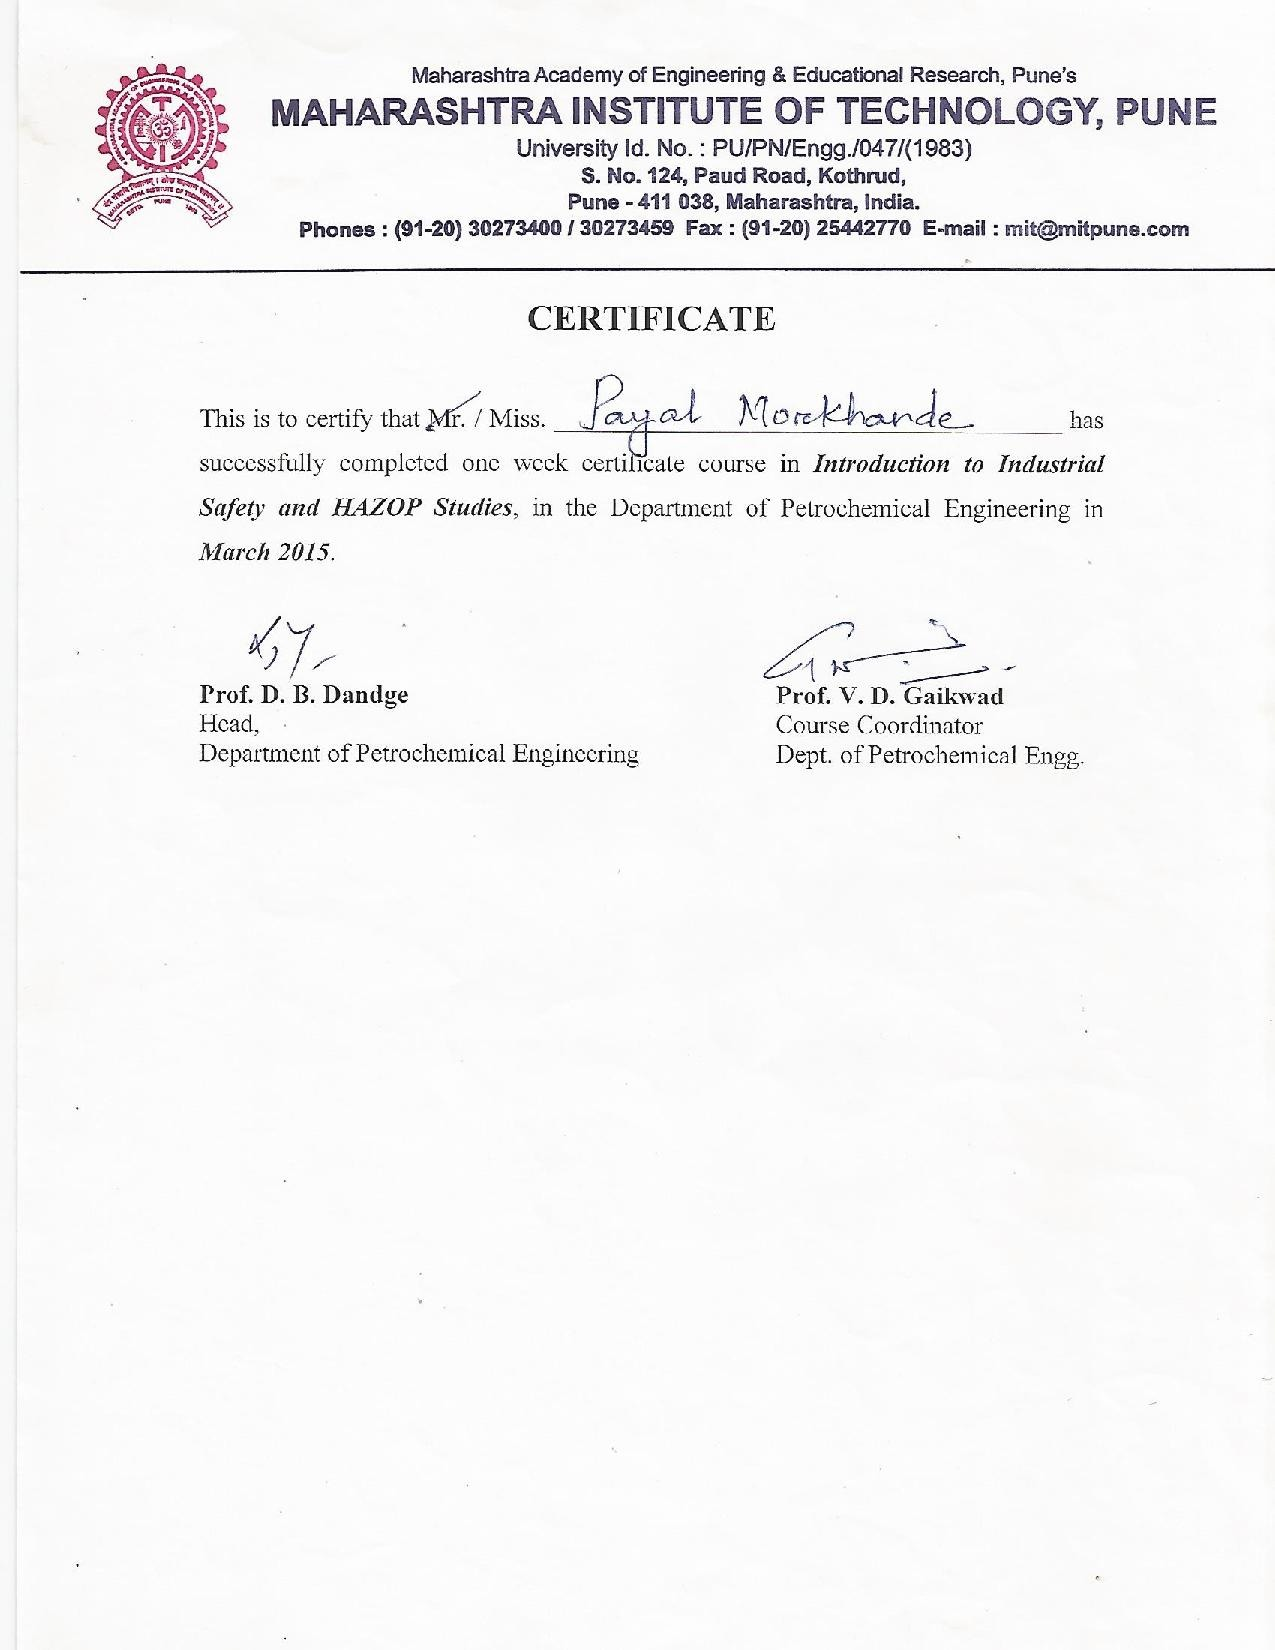 Payal morkhande bayt industrial safety and hazop studies certificate 1betcityfo Choice Image